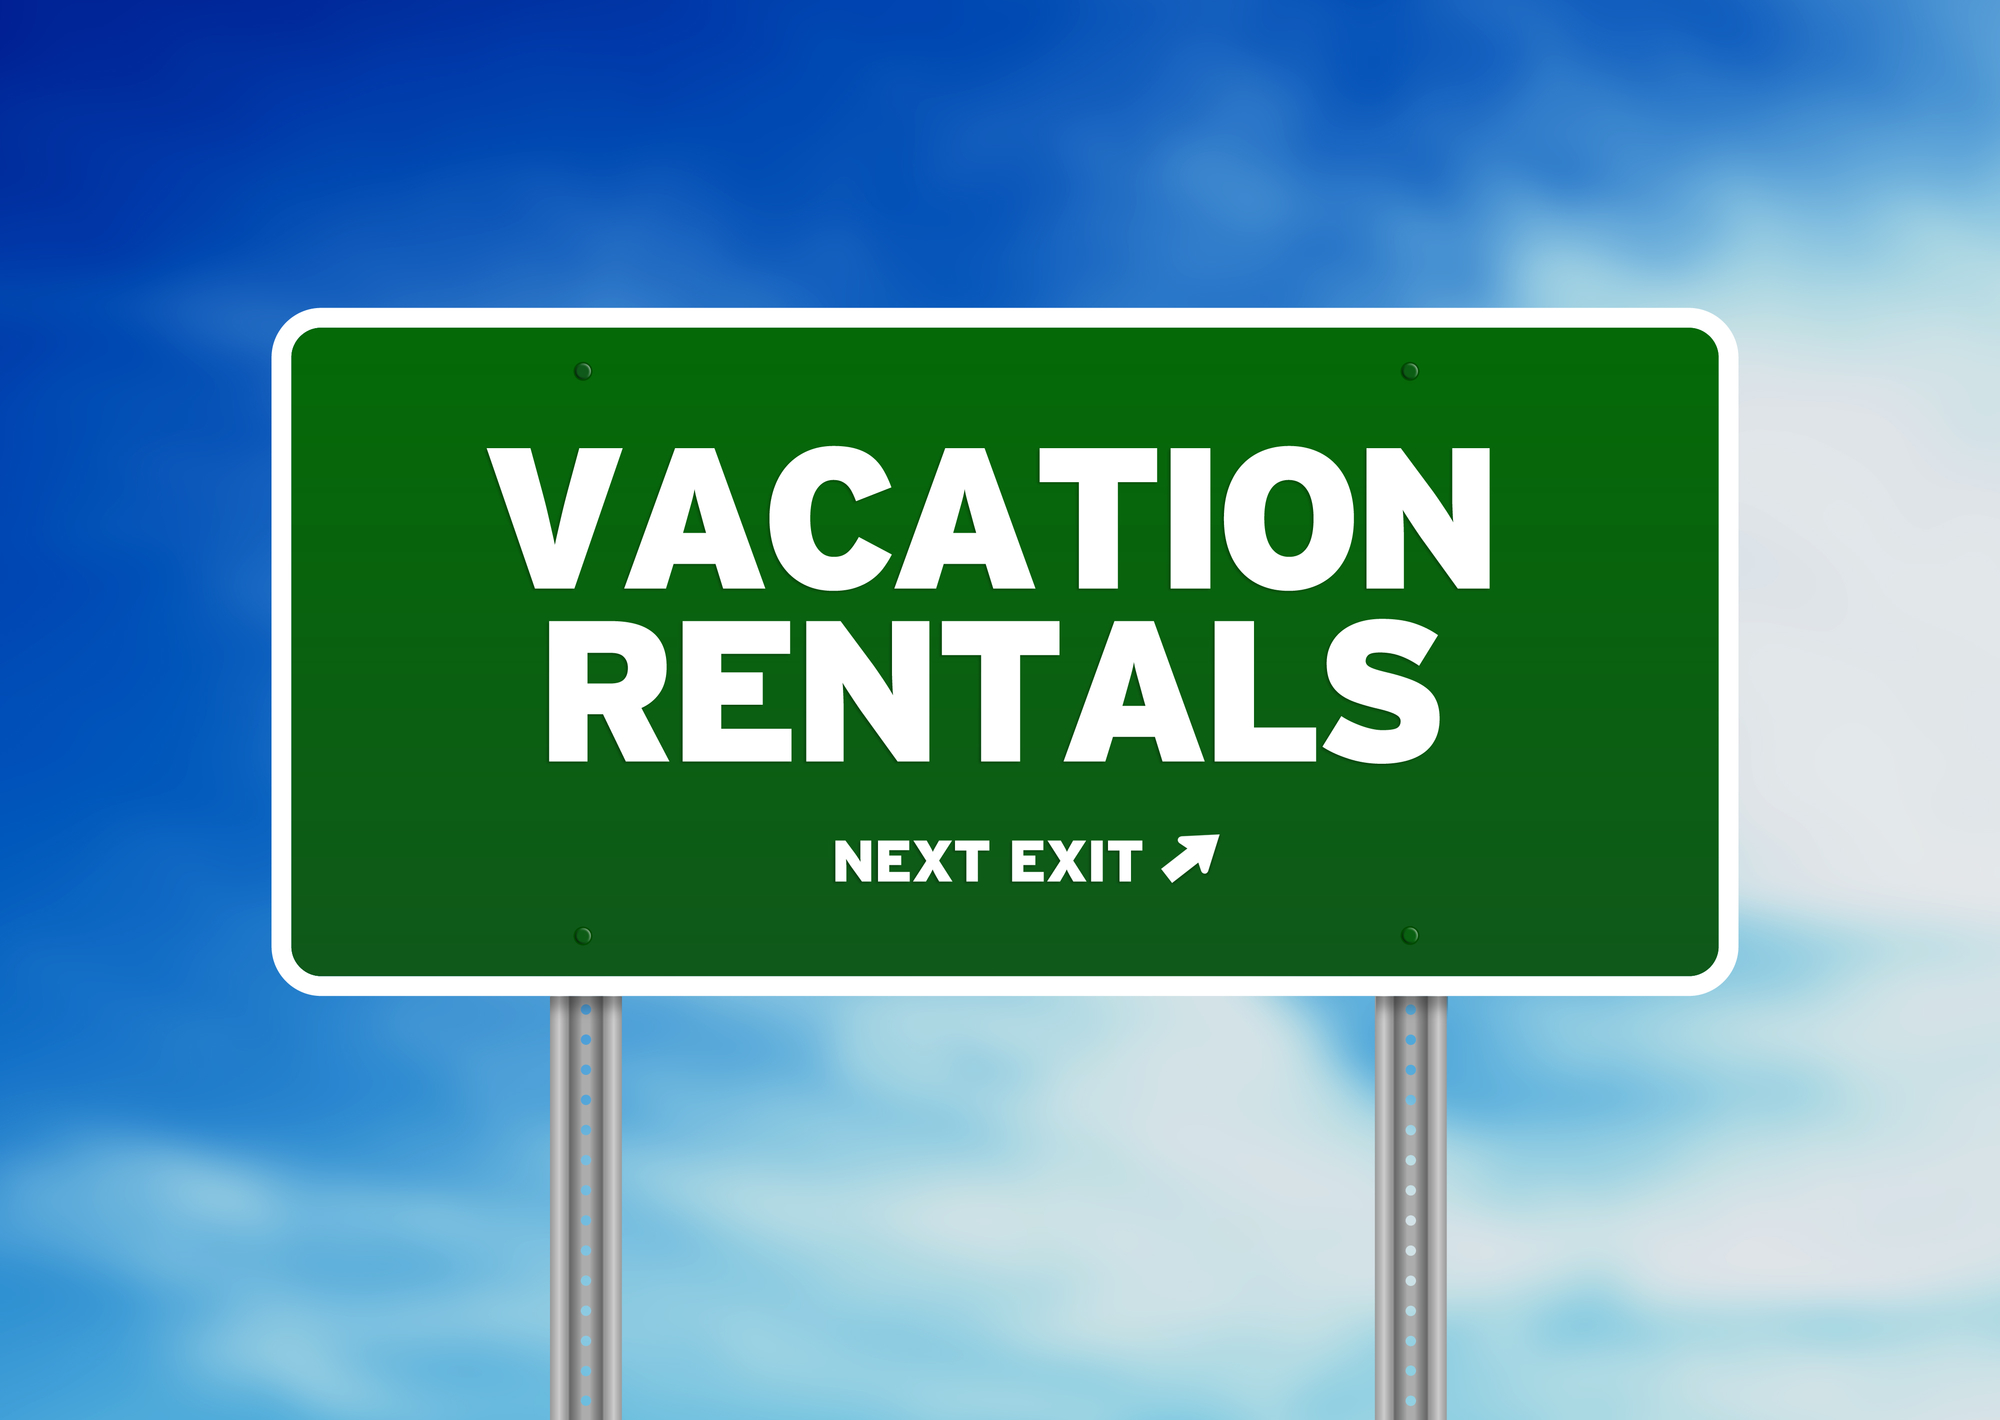 """Green road sign with """"VACATION RENTALS NEXT EXIT"""" displayed"""